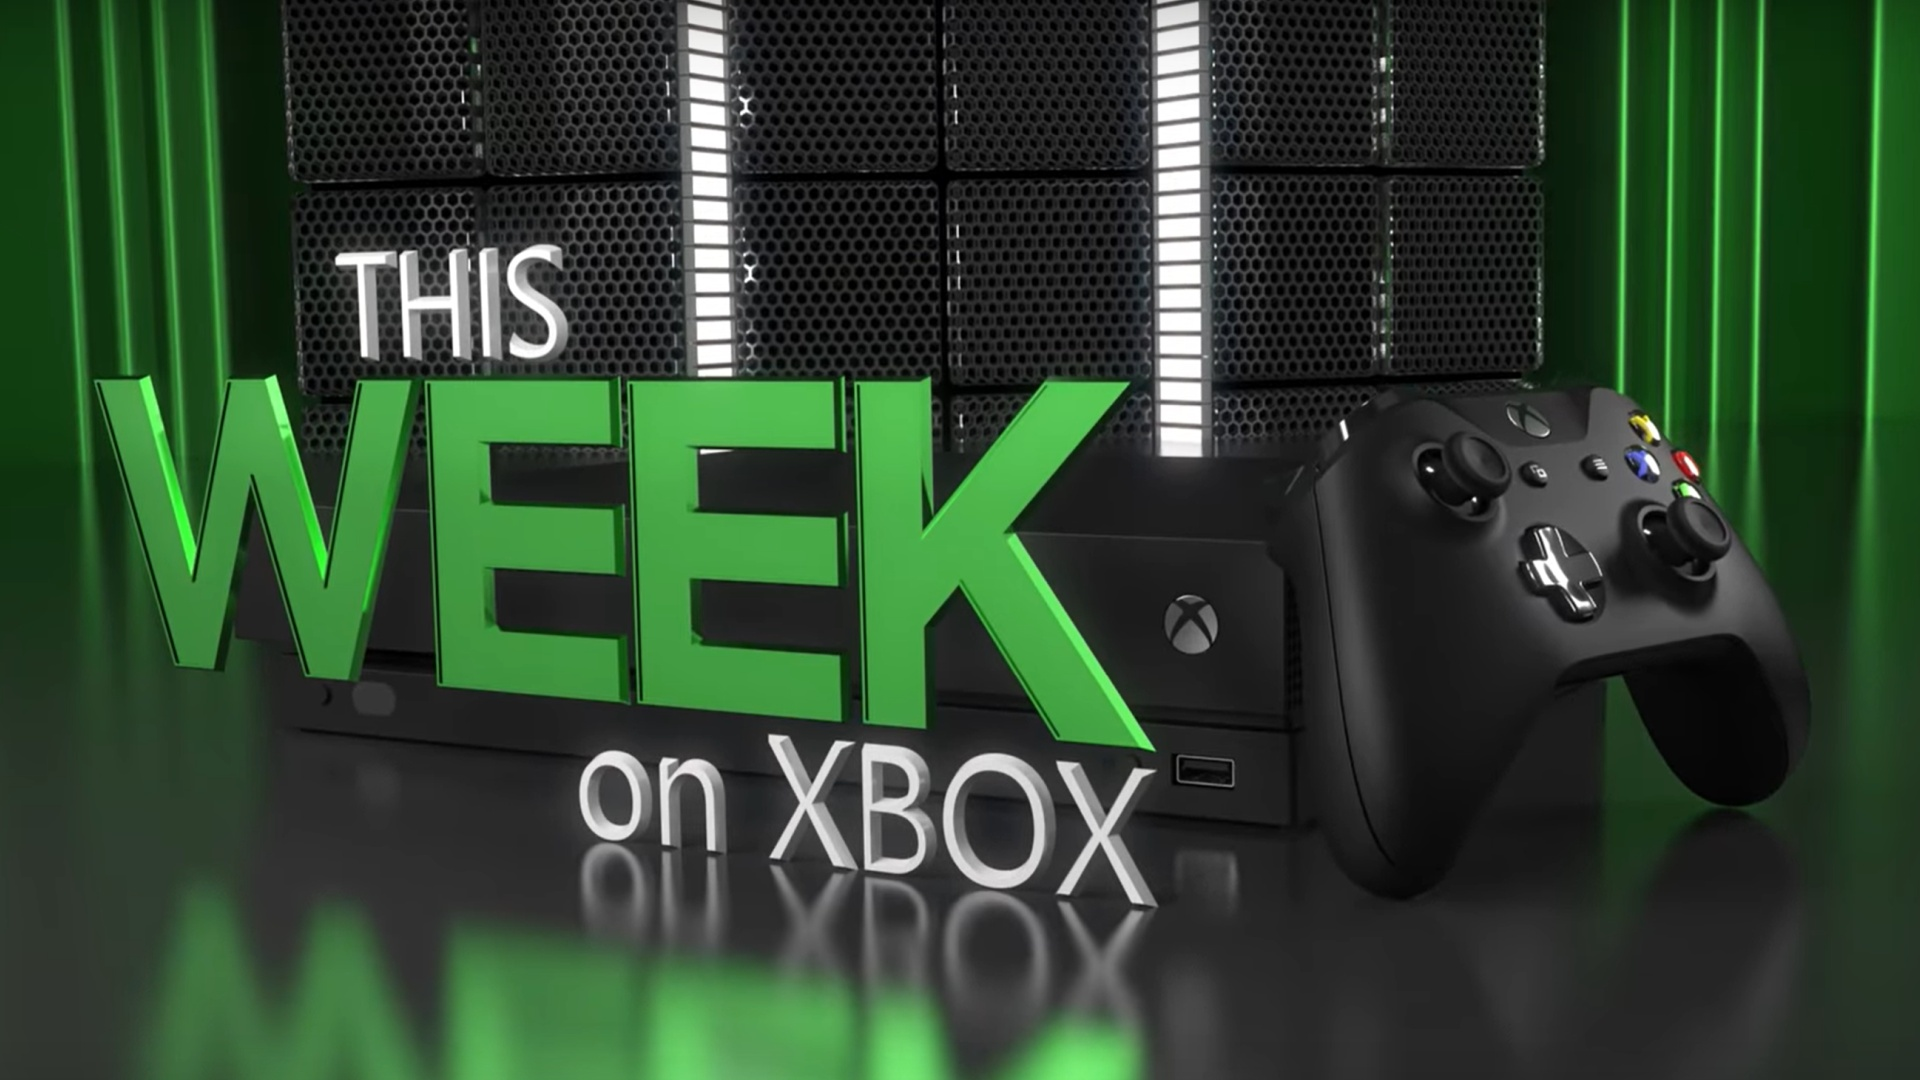 Video For This Week on Xbox: January 31, 2020